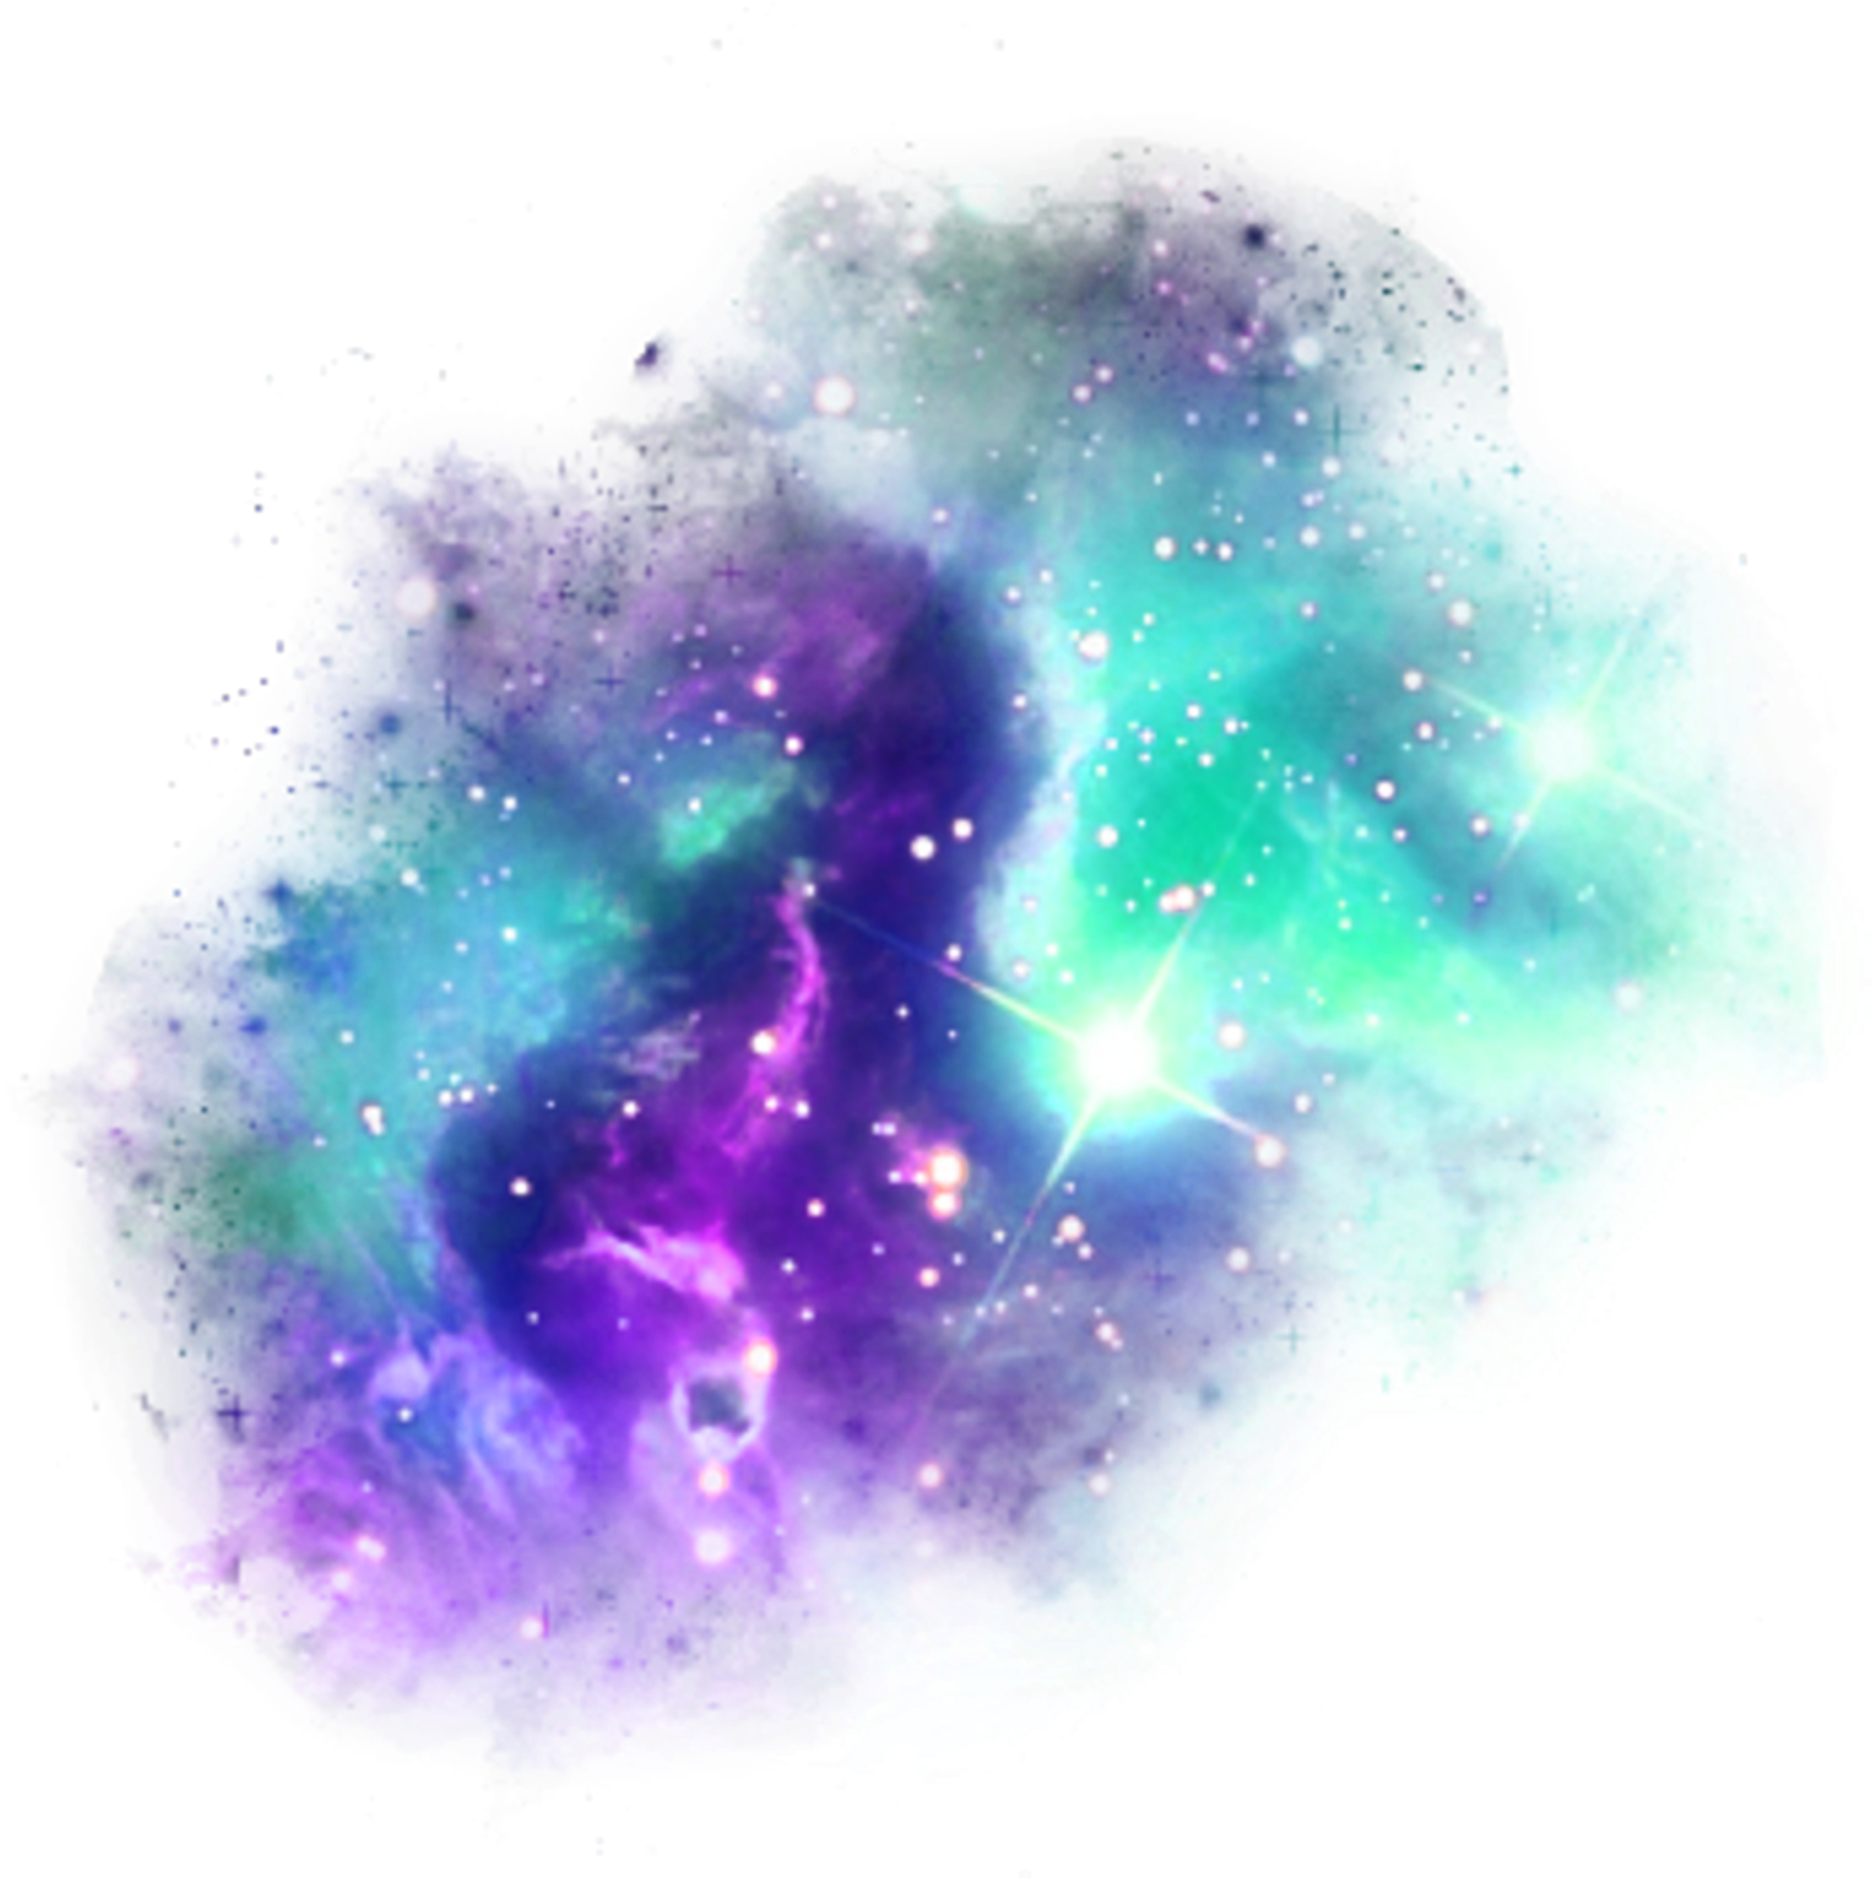 [Imagen: 855-8551589_galaxy-space-outerspace-smok...xy-png.png]